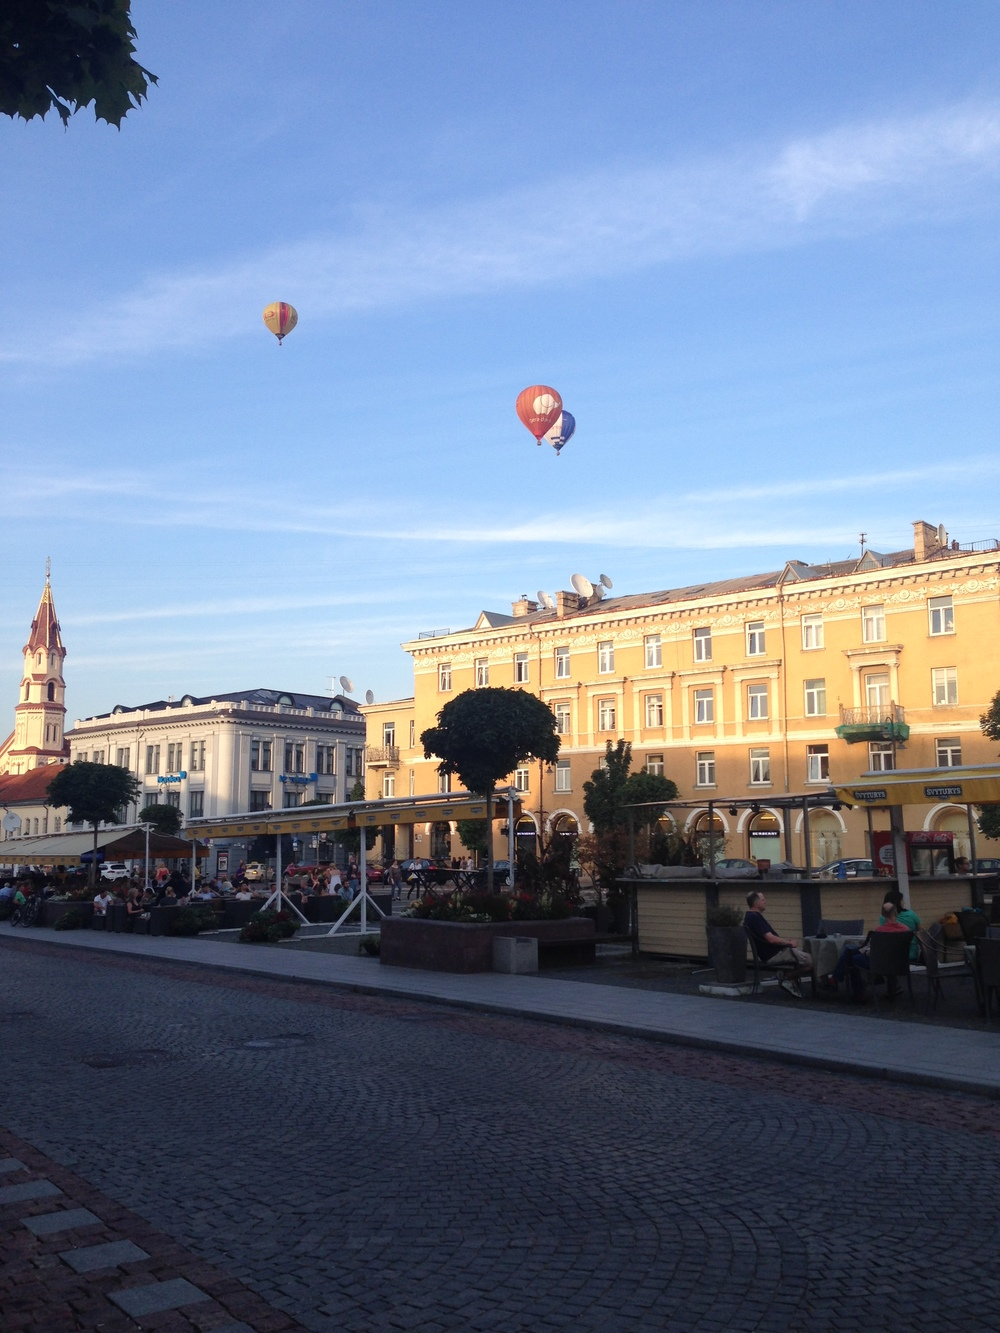 Town Hall Square in the evening. Keep an eye out for hot air balloons, which frequently fly by.